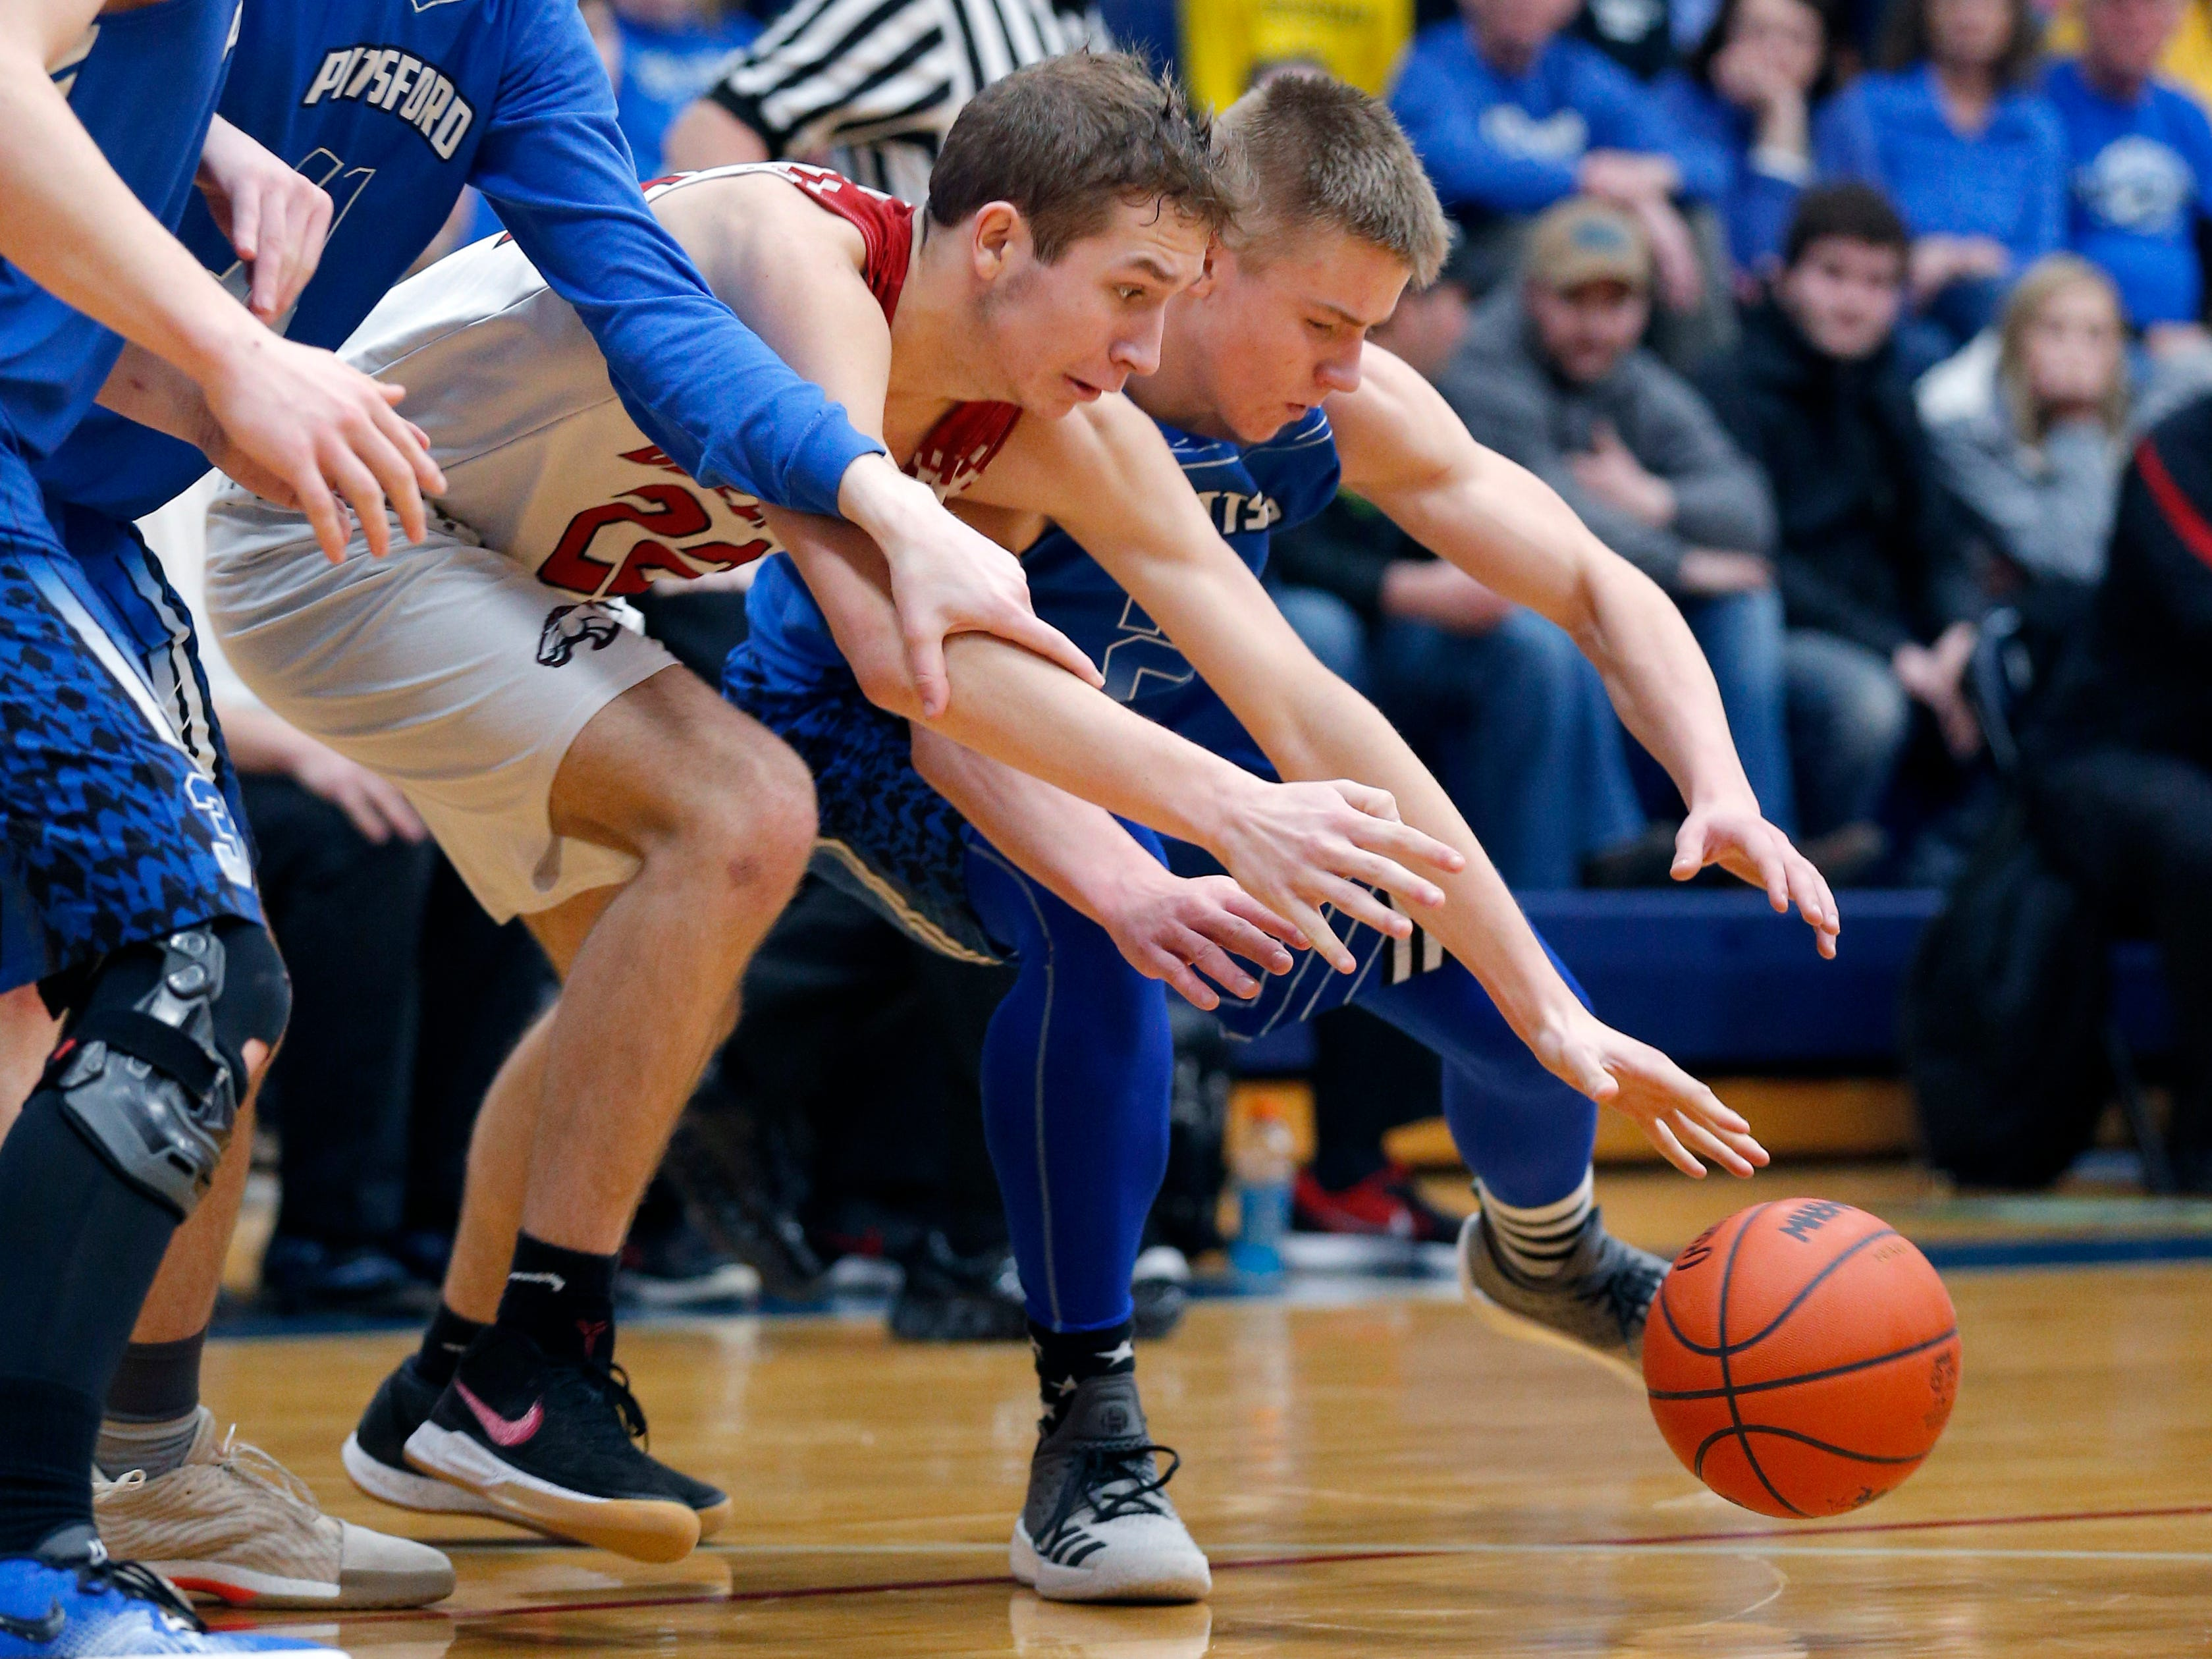 Pittsford's Zachery Gigowski, right, and Bellevue's Carter Wing vie for the ball in their regional final, Thursday, March 7, 2019, in Fowler, Mich. Bellevue won 42-28.